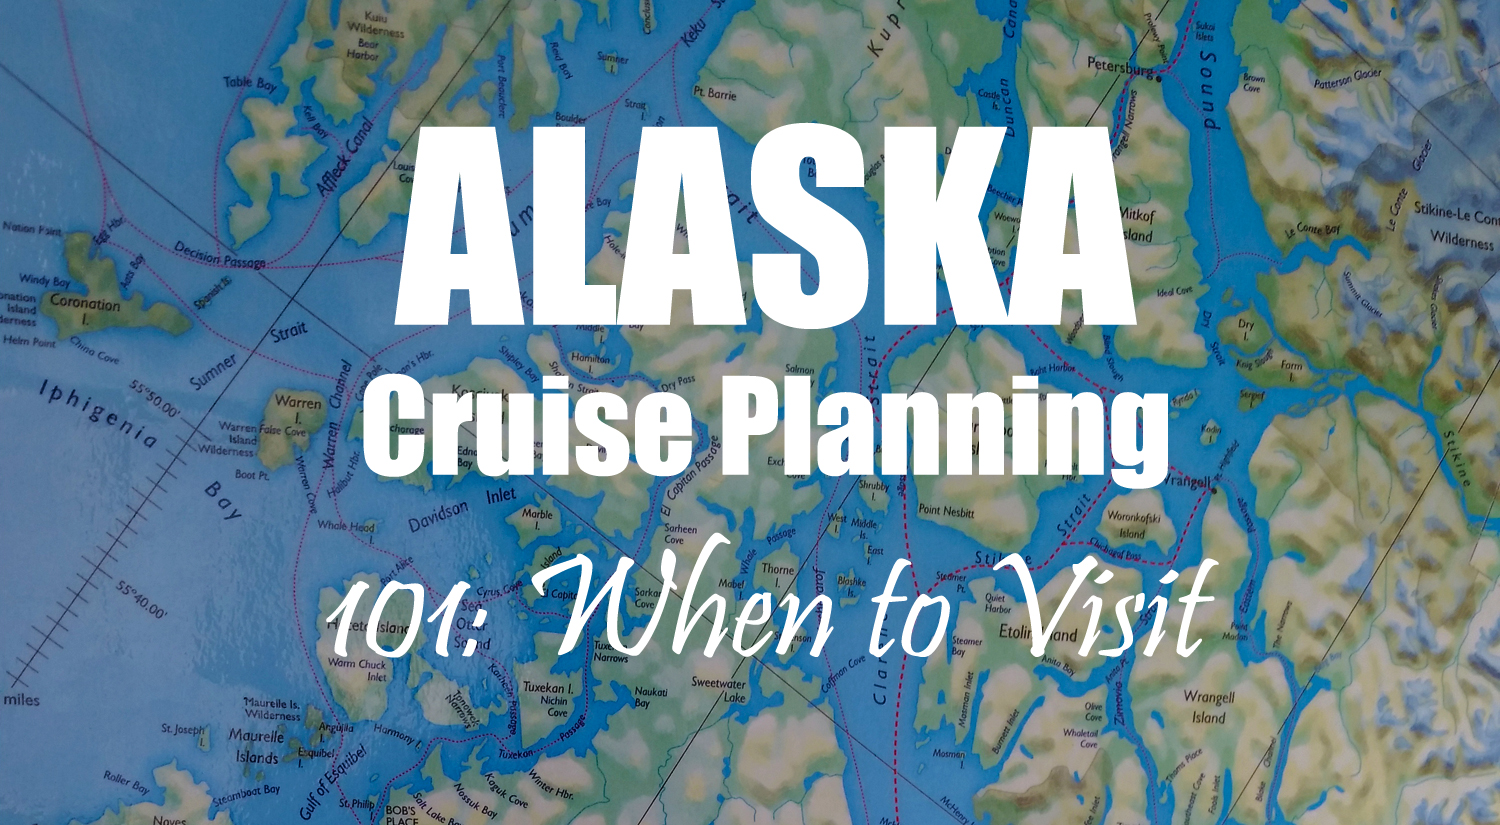 When is the best time to visit Alaska on a cruise?